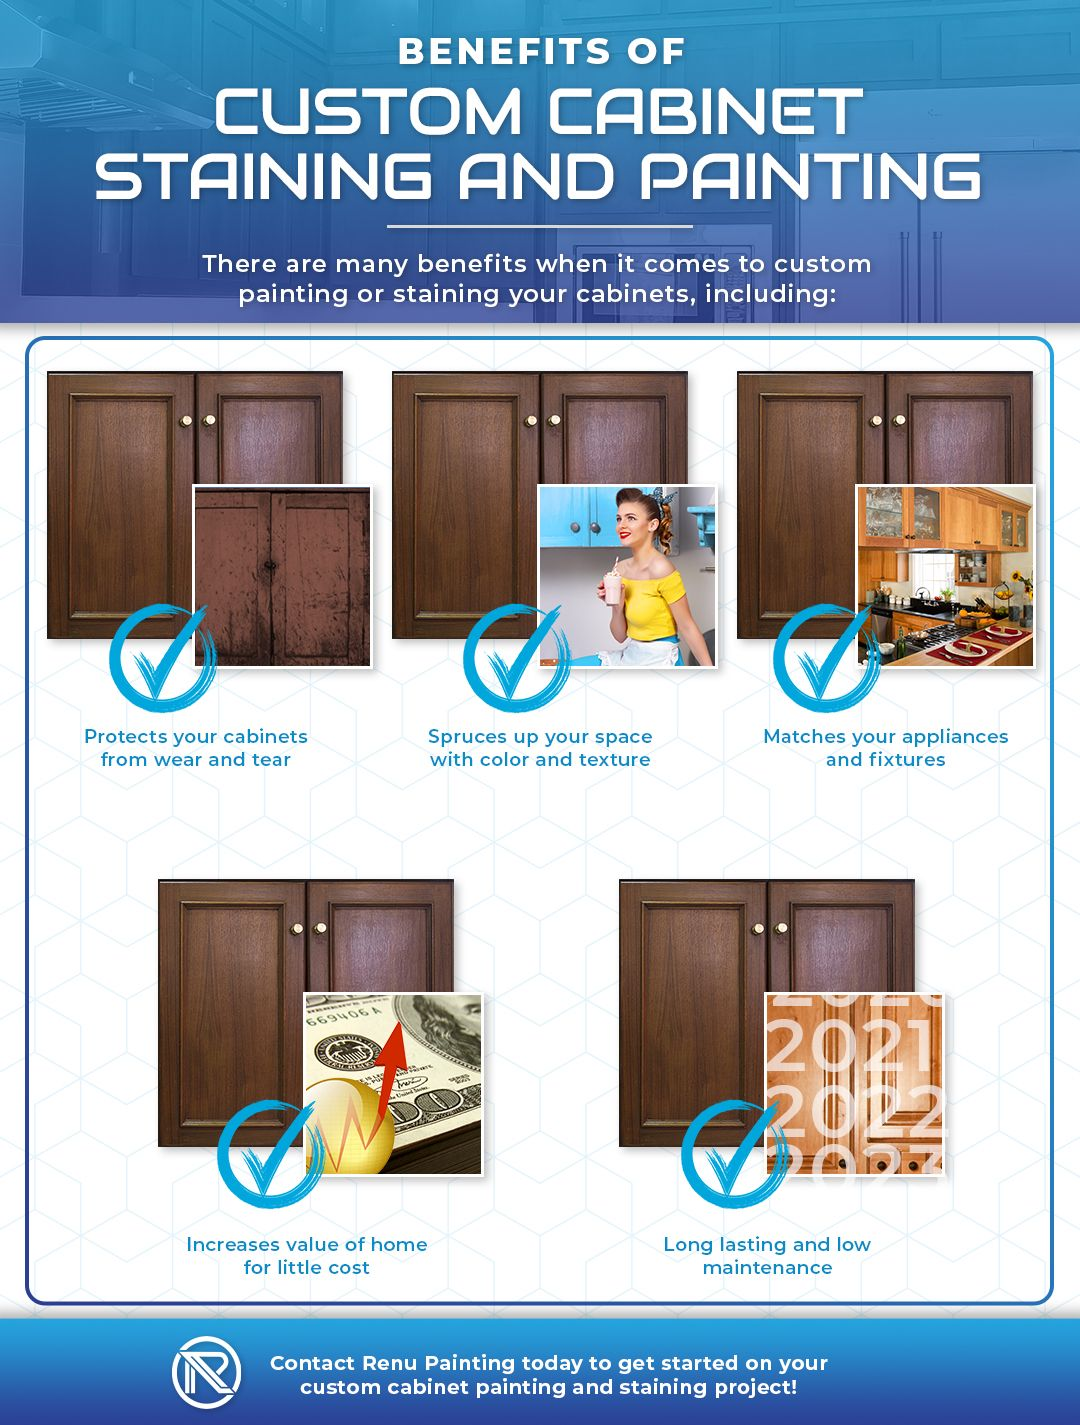 Benefits-Of-Custom-Cabinet-Staining-and-Painting-5f0c9833102a3.jpg